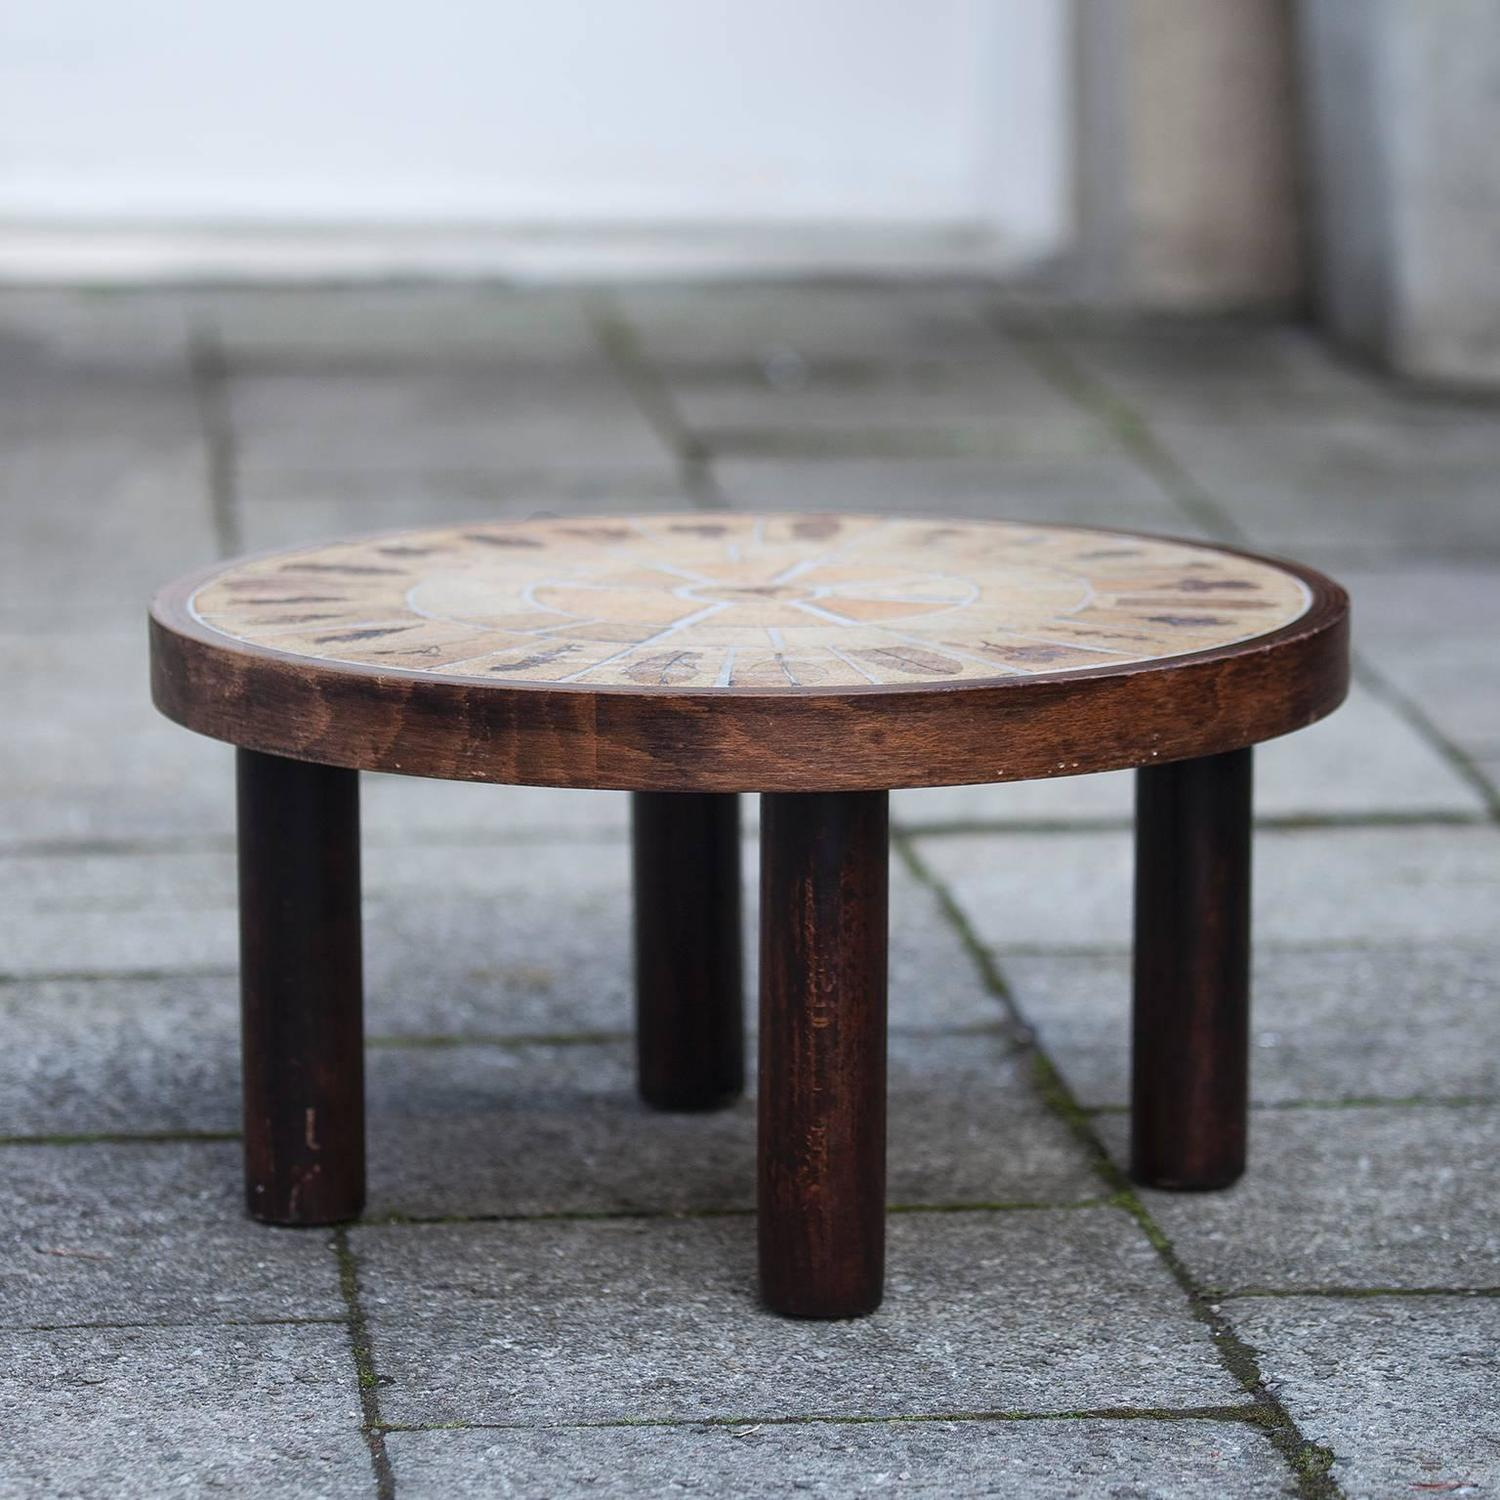 Roger Capron Signed Small Ceramic Coffee Table For Sale at 1stdibs